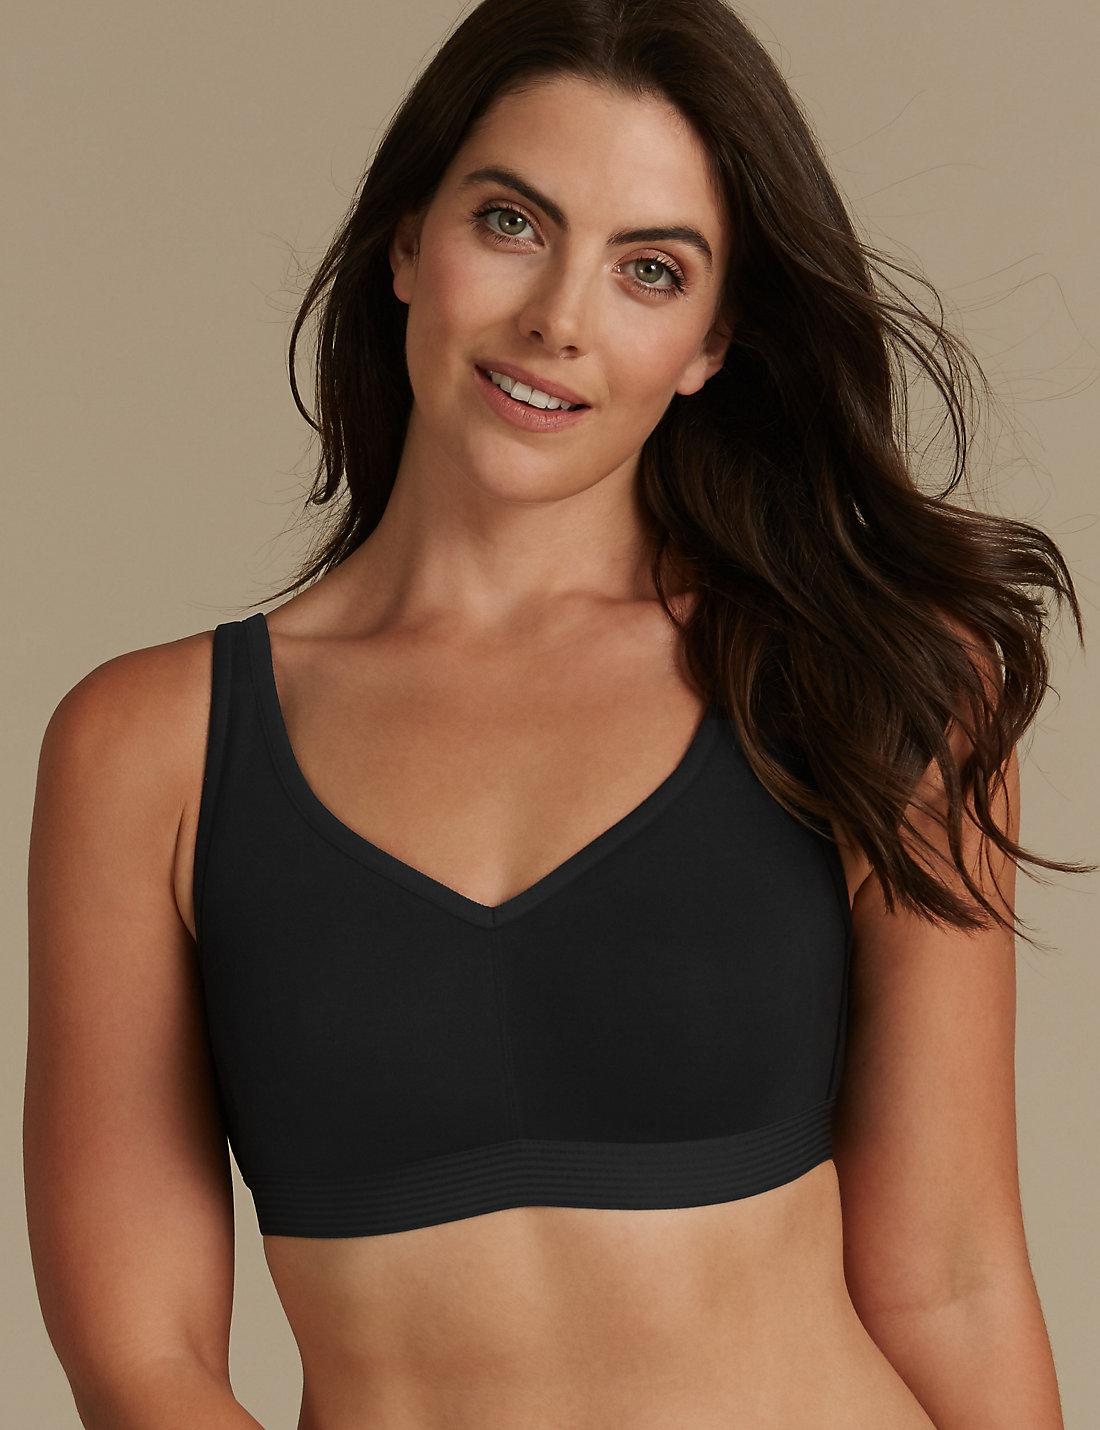 a4e1119ecadd0 Lyst - Marks & Spencer Cotton Rich Non-padded Full Cup Bra B-g in Black